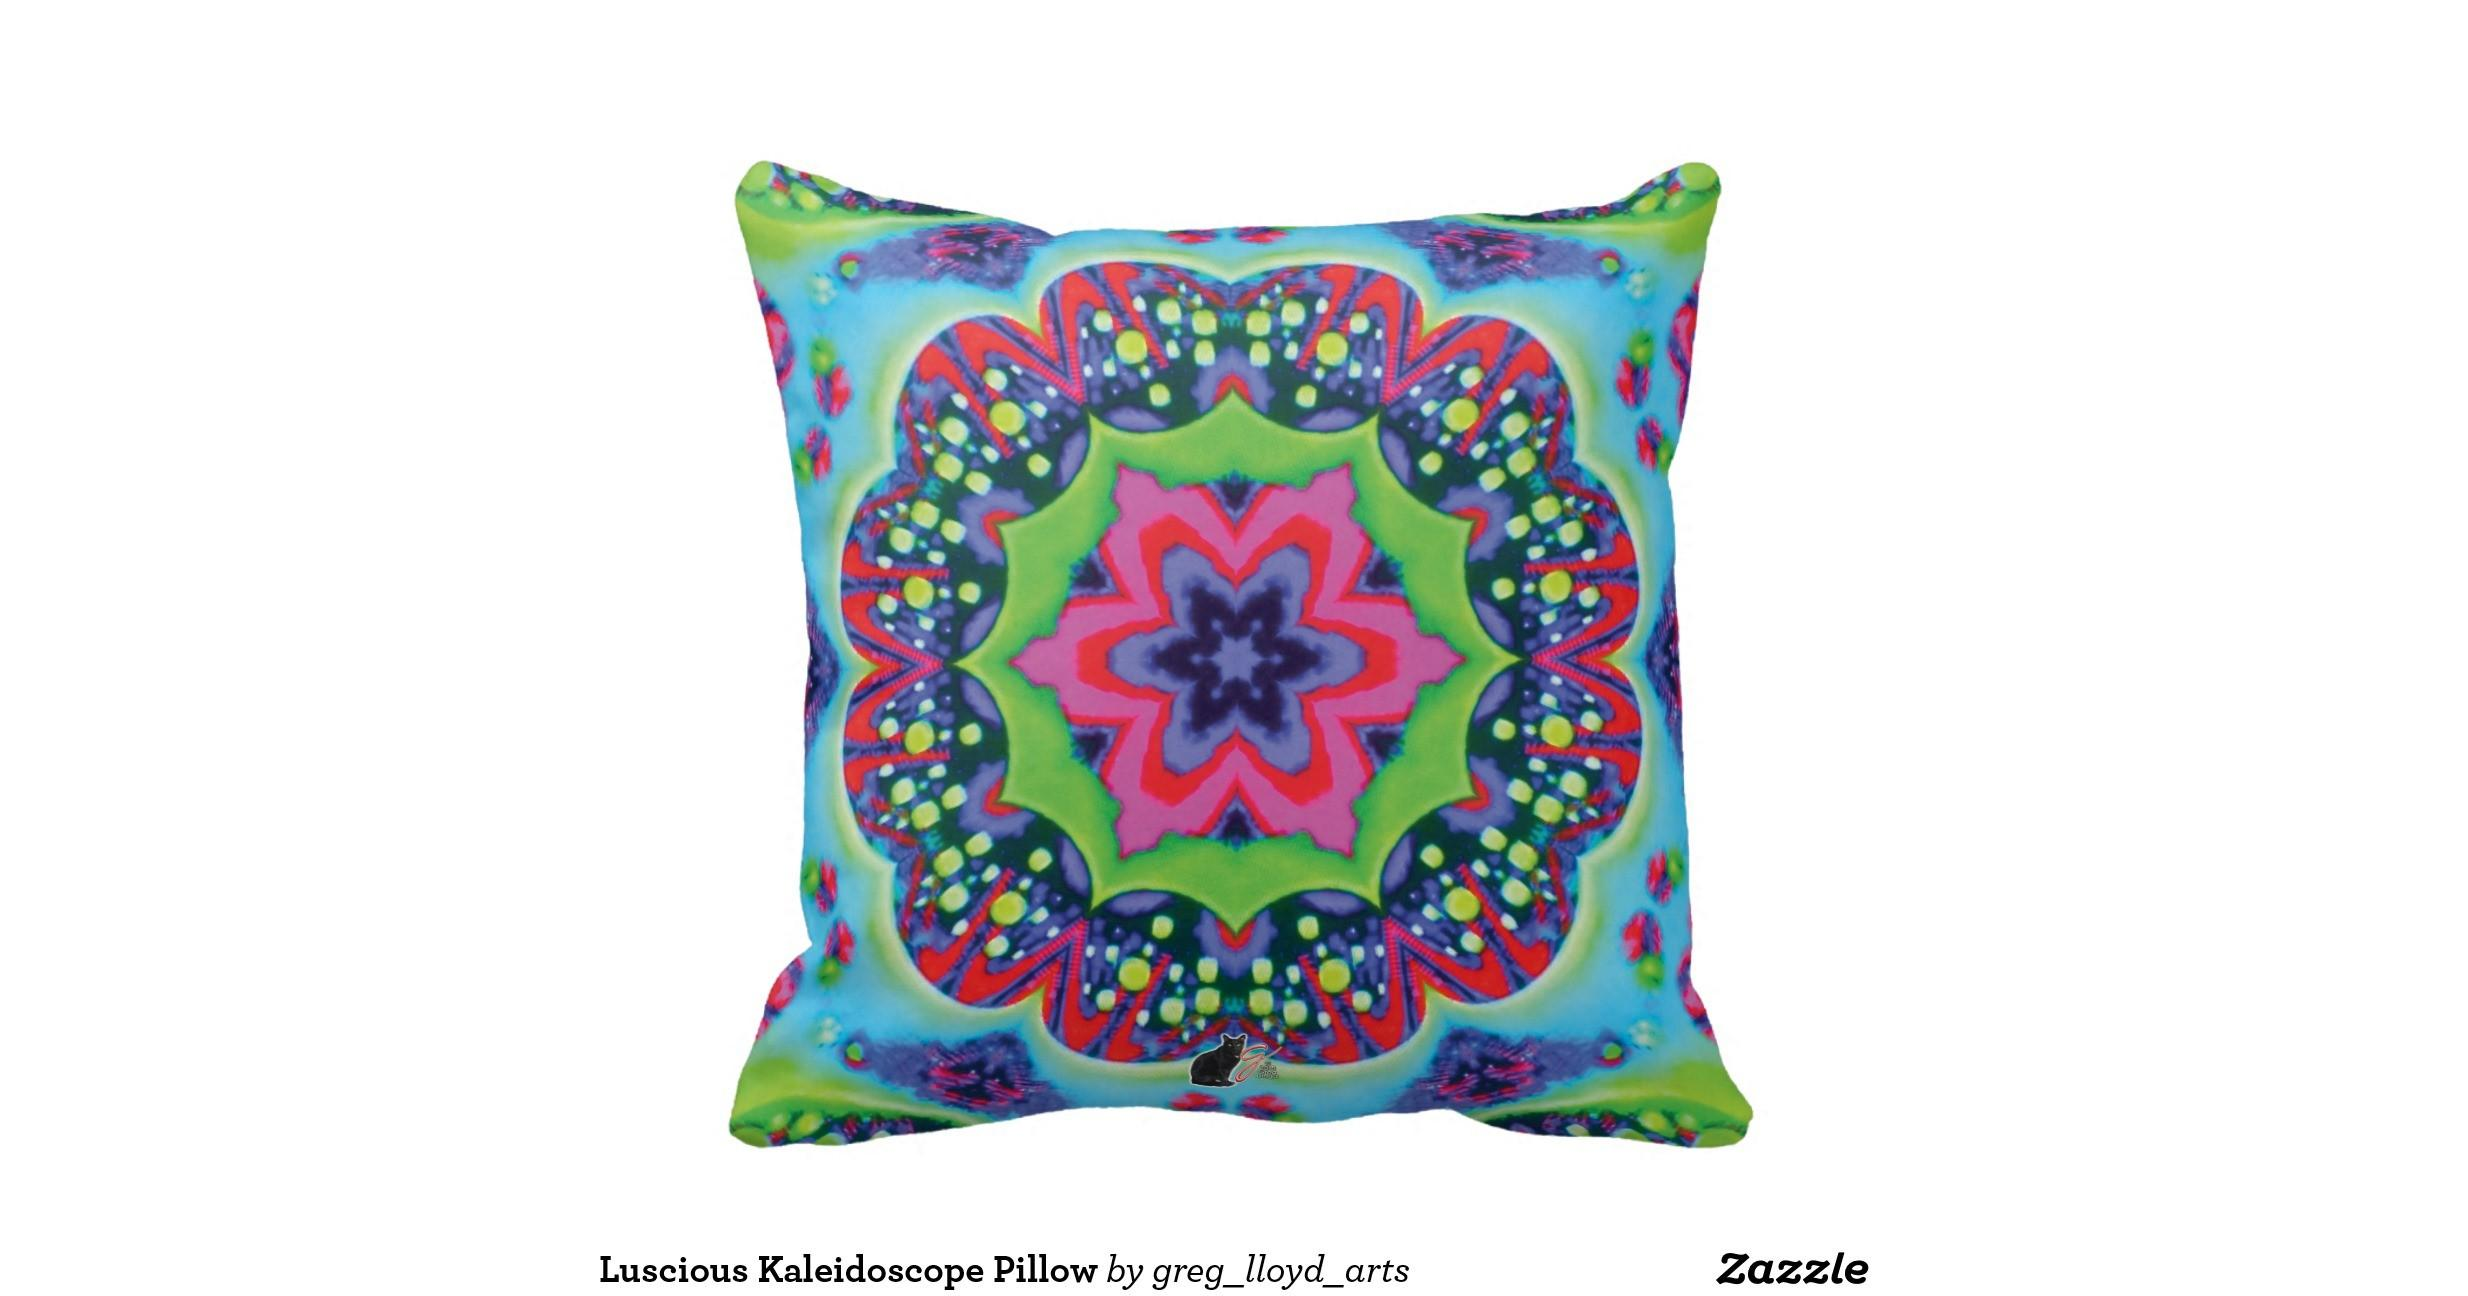 Luscious Kaleidoscope Pillow Zazzle